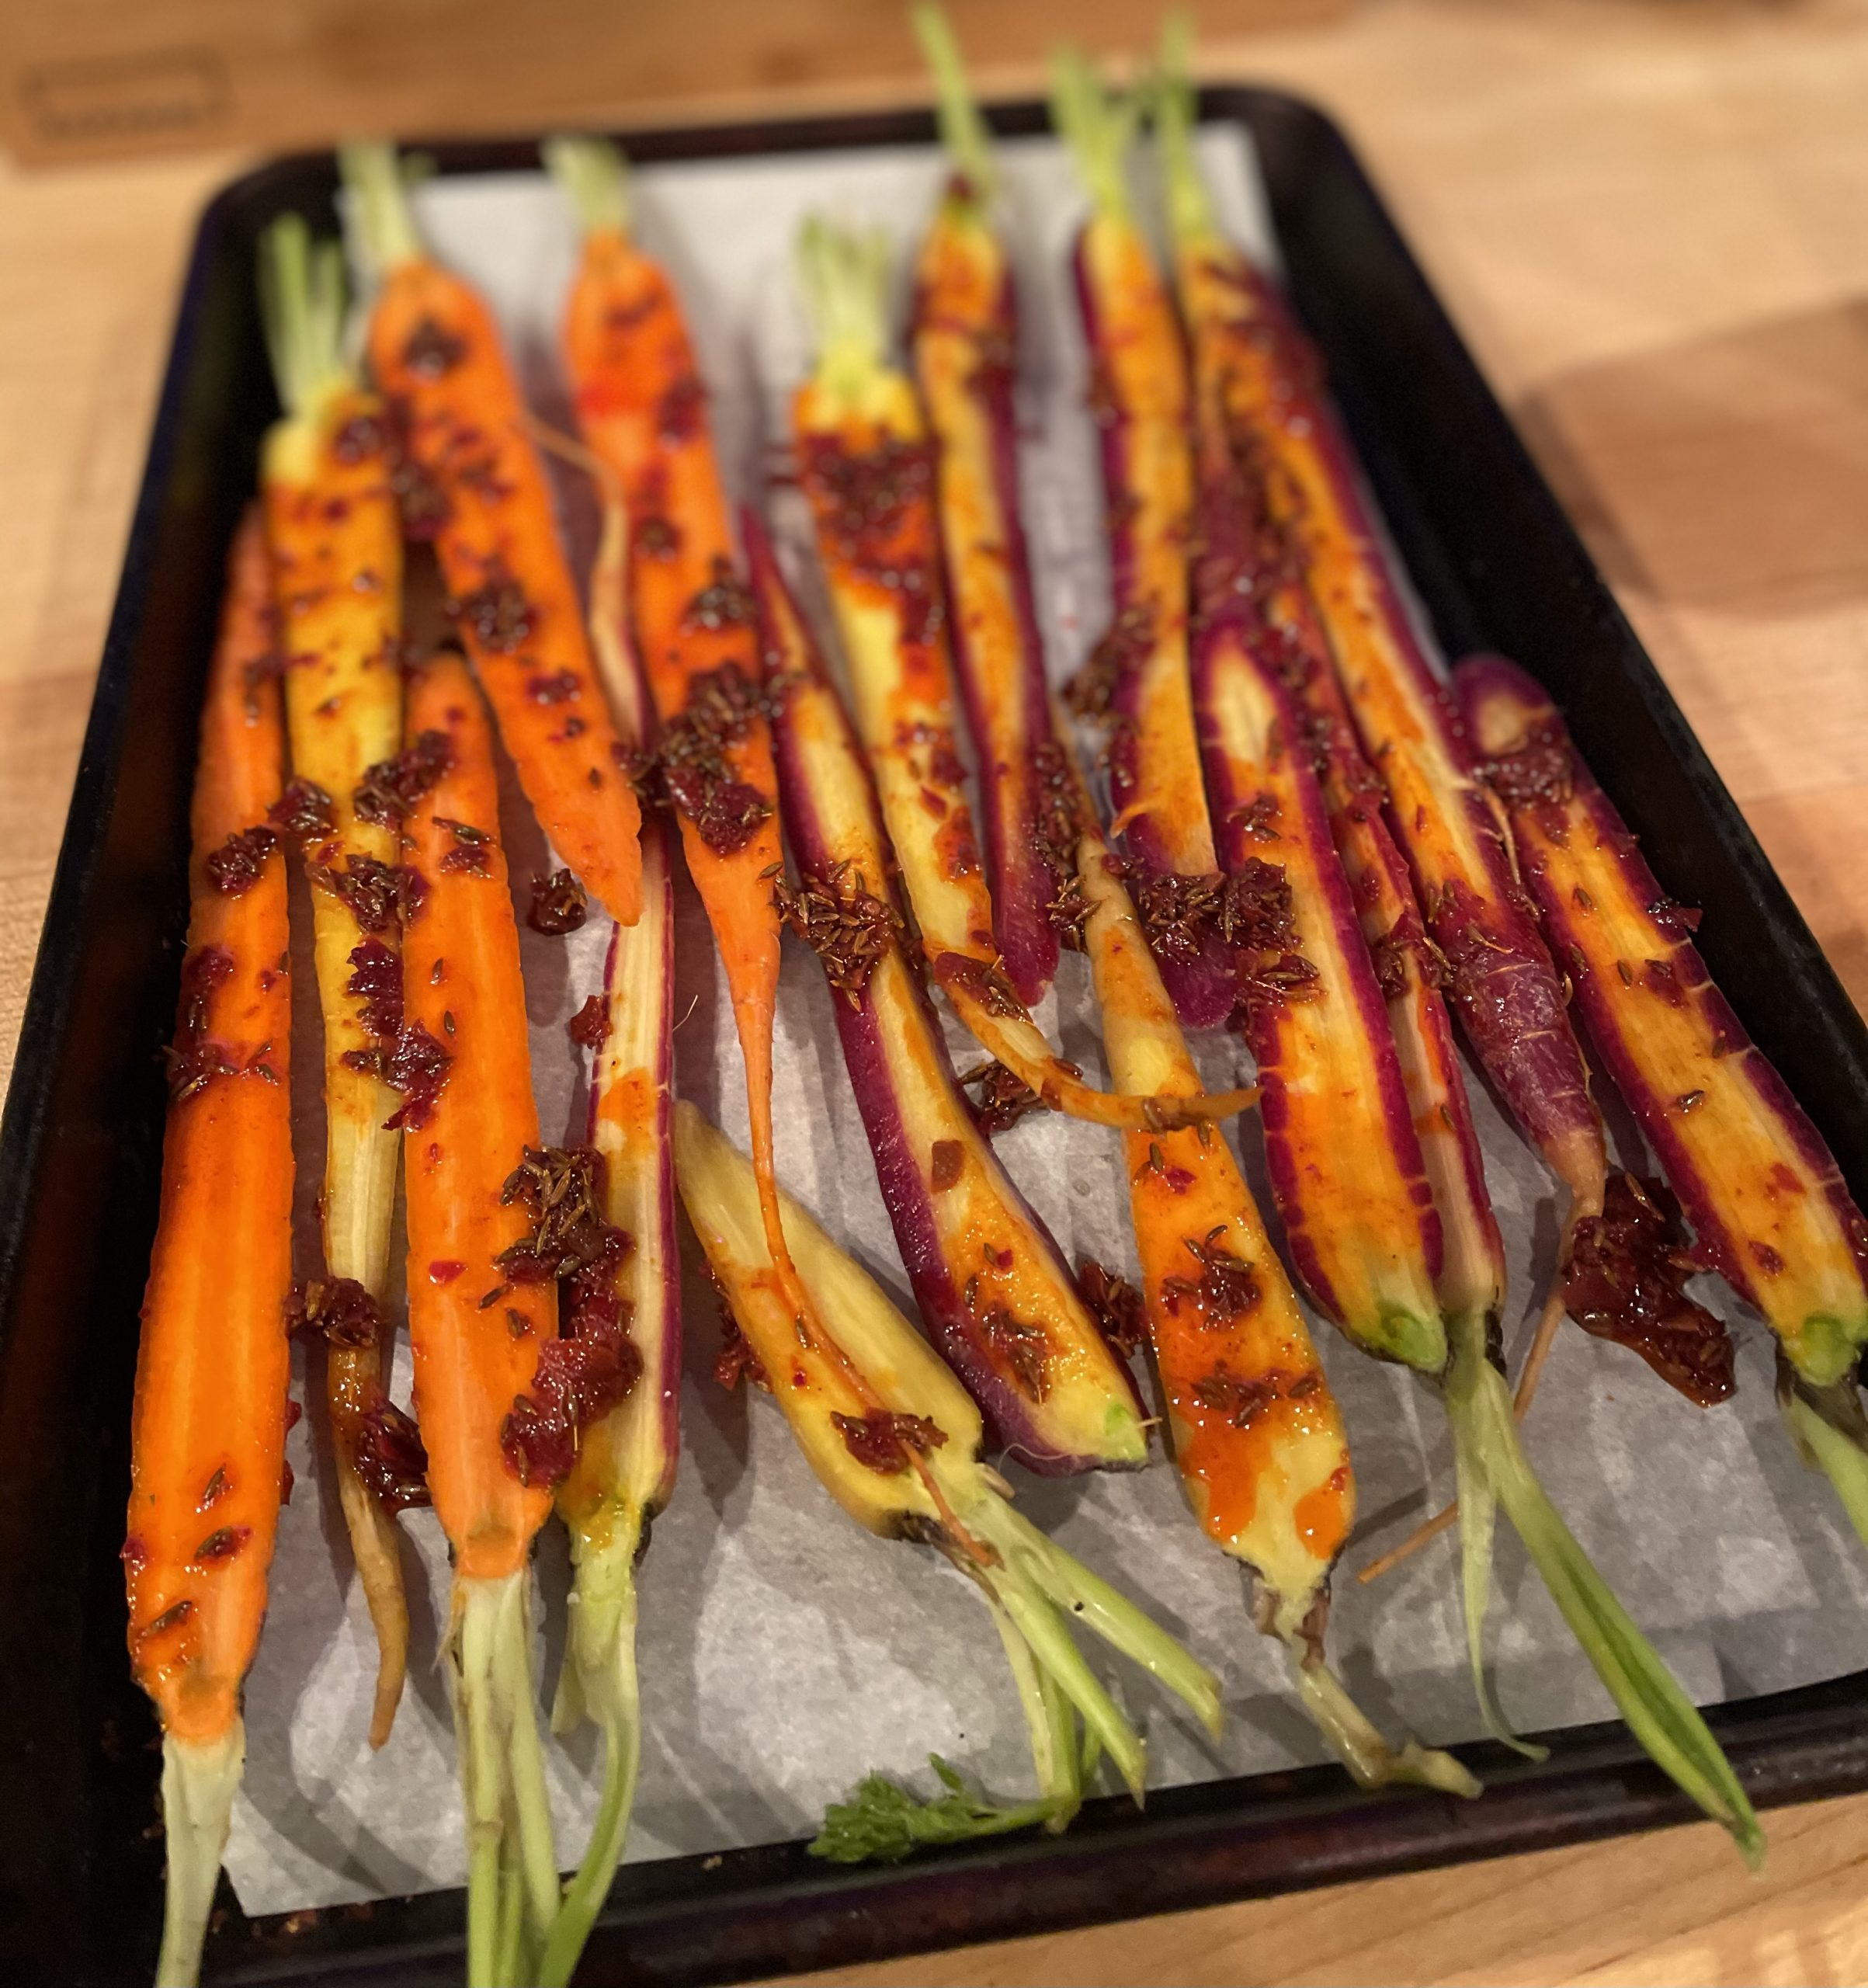 Carrots Roasted with Rose Harissa and drizzled with Garlic Tahini Sauce